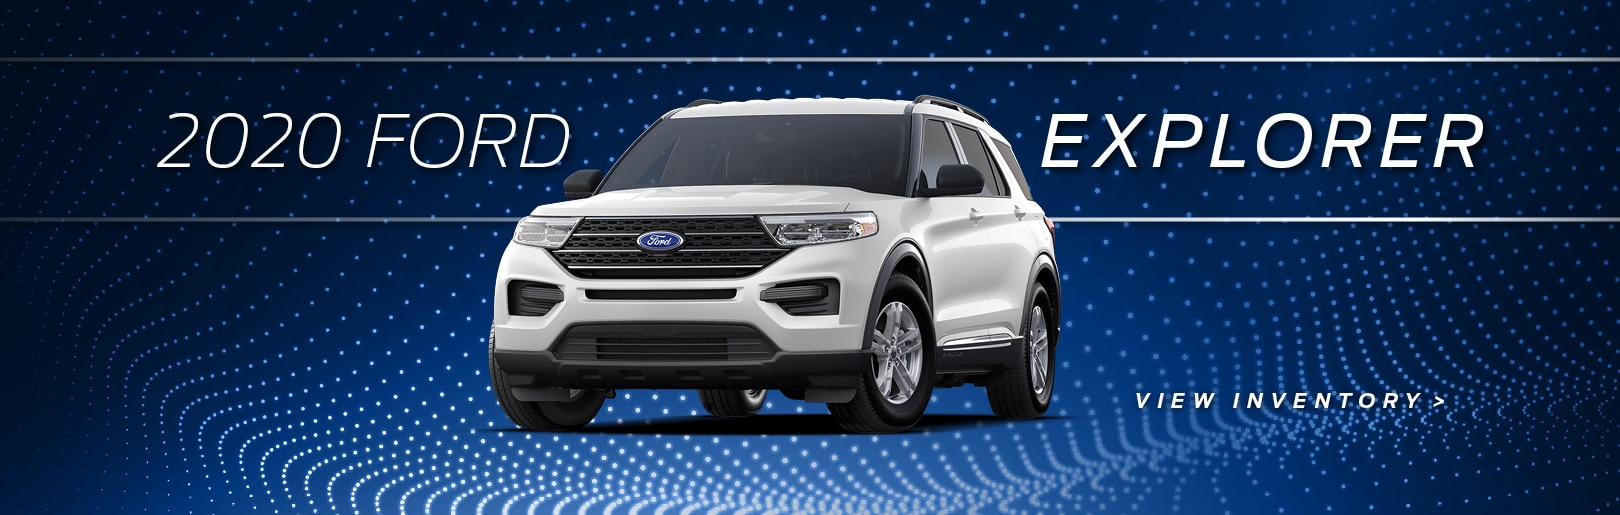 Frontier Ford Anacortes >> Frontier Ford | Ford Dealership in Anacortes WA